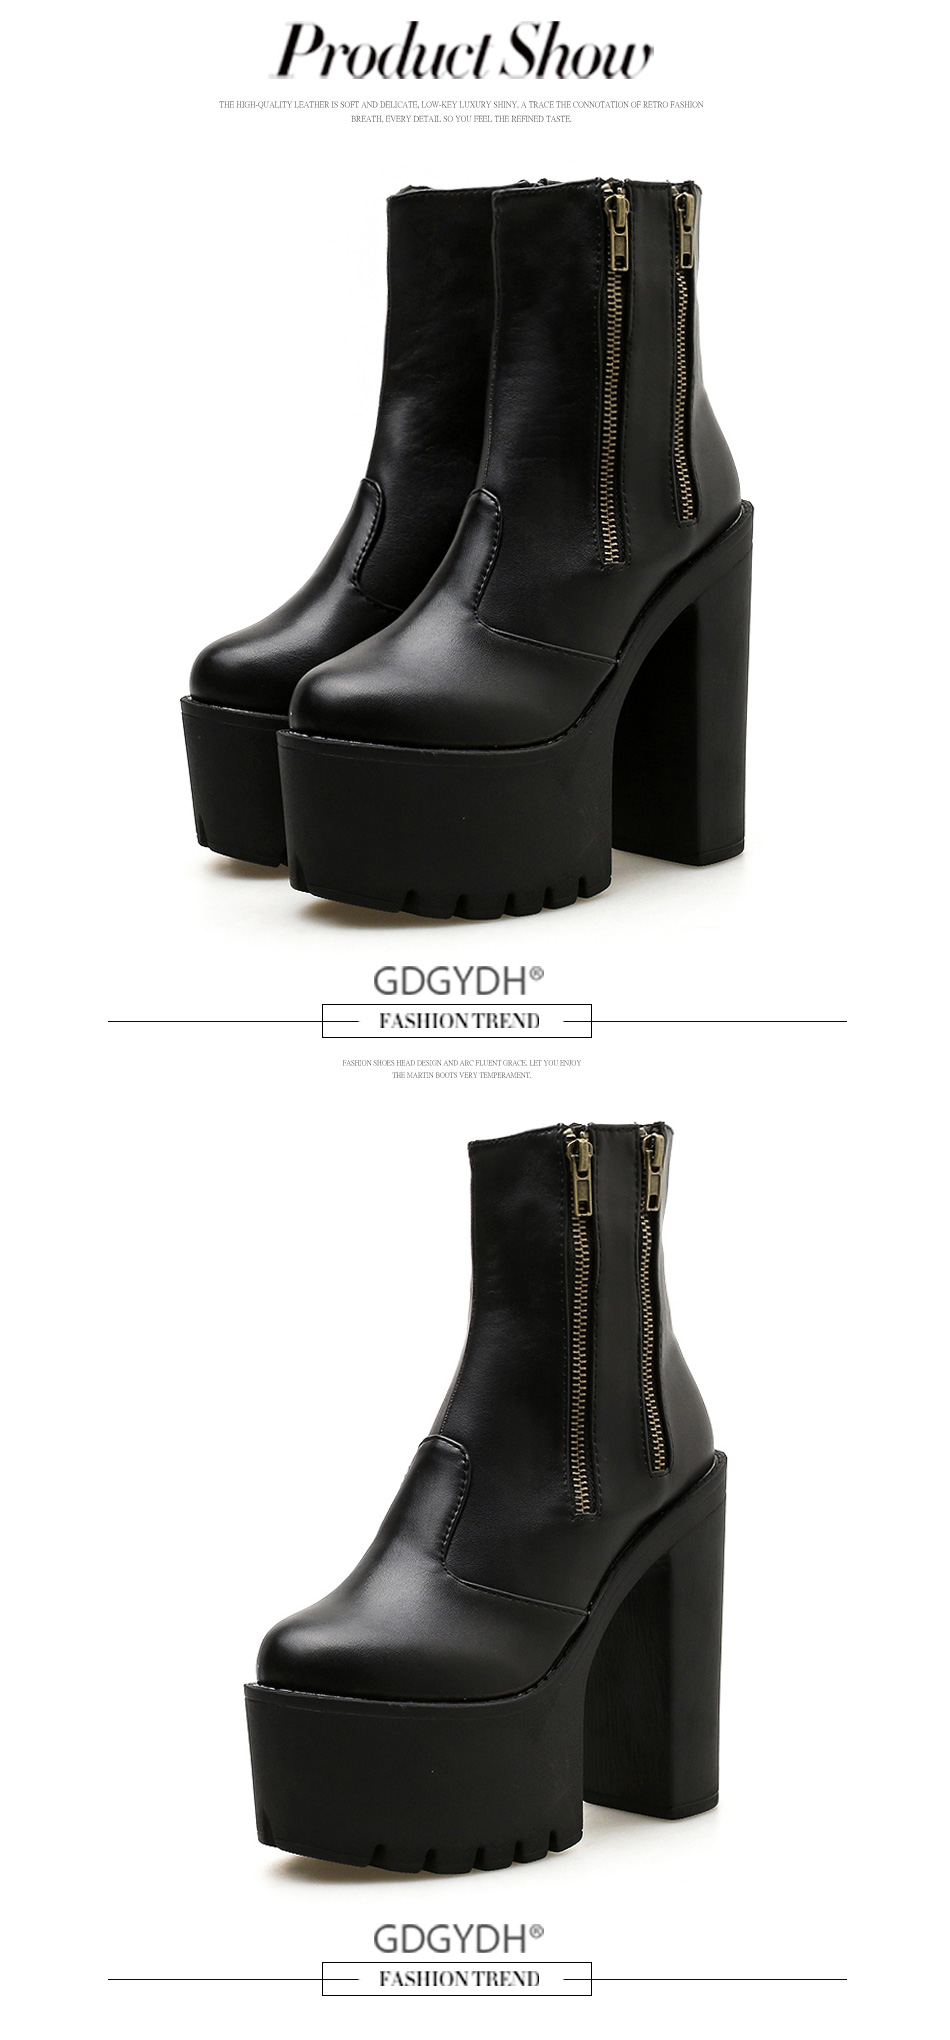 e3722d95085 Detail Feedback Questions about Gdgydh 2018 Women Ankle Leather ...